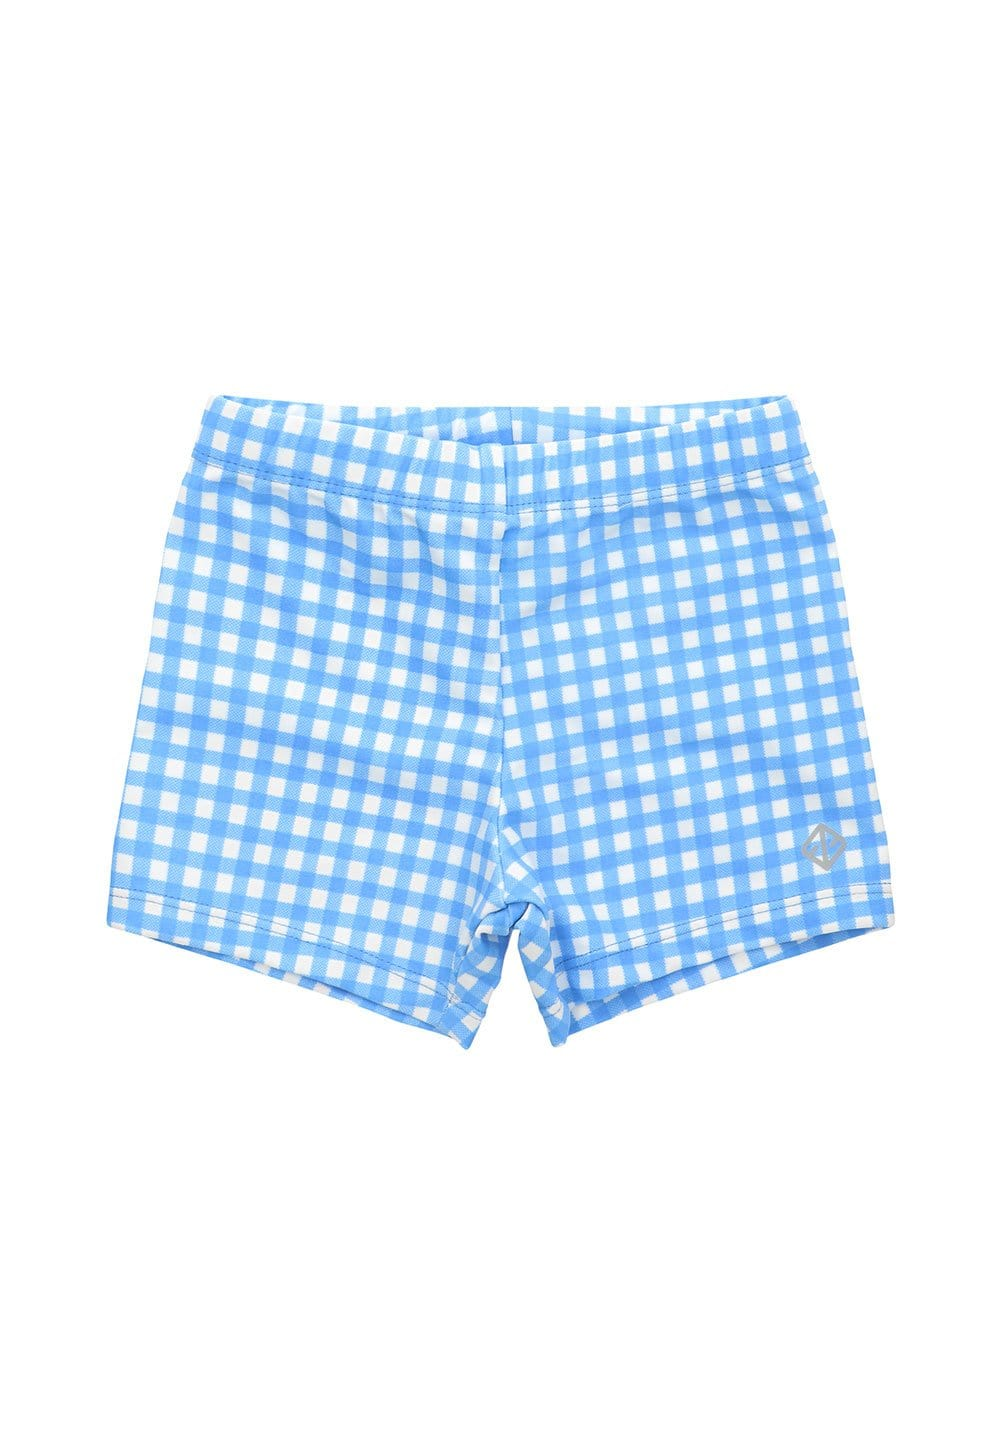 UPF50+ Junior Bottom (Unisex) in Gingham Summer Print